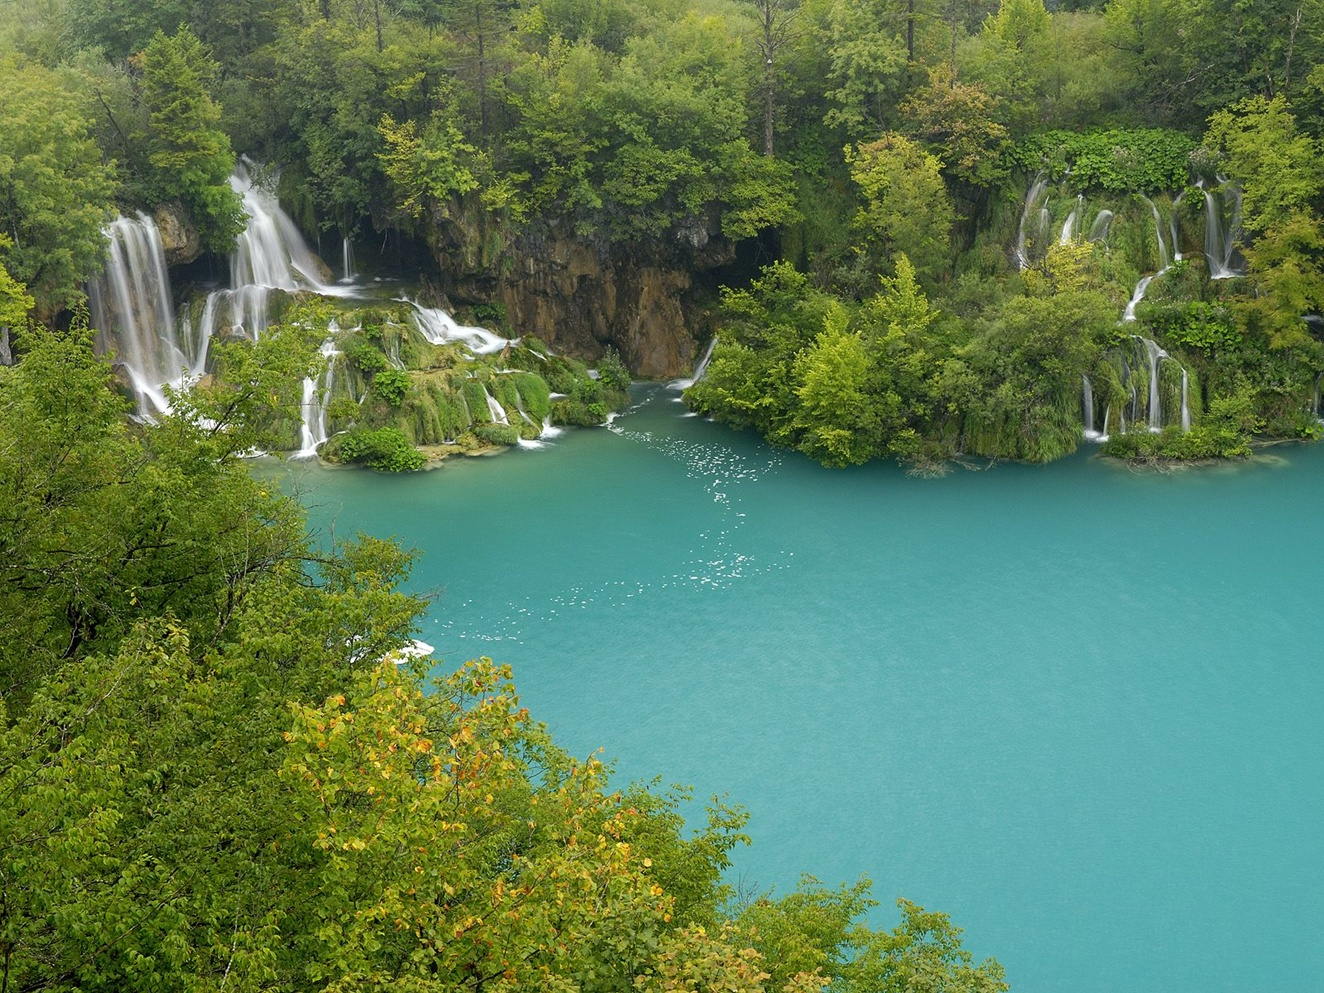 plitvice lakes national park waterfall wallpapers - Plitvice Lakes National Park Photos Featured Images of